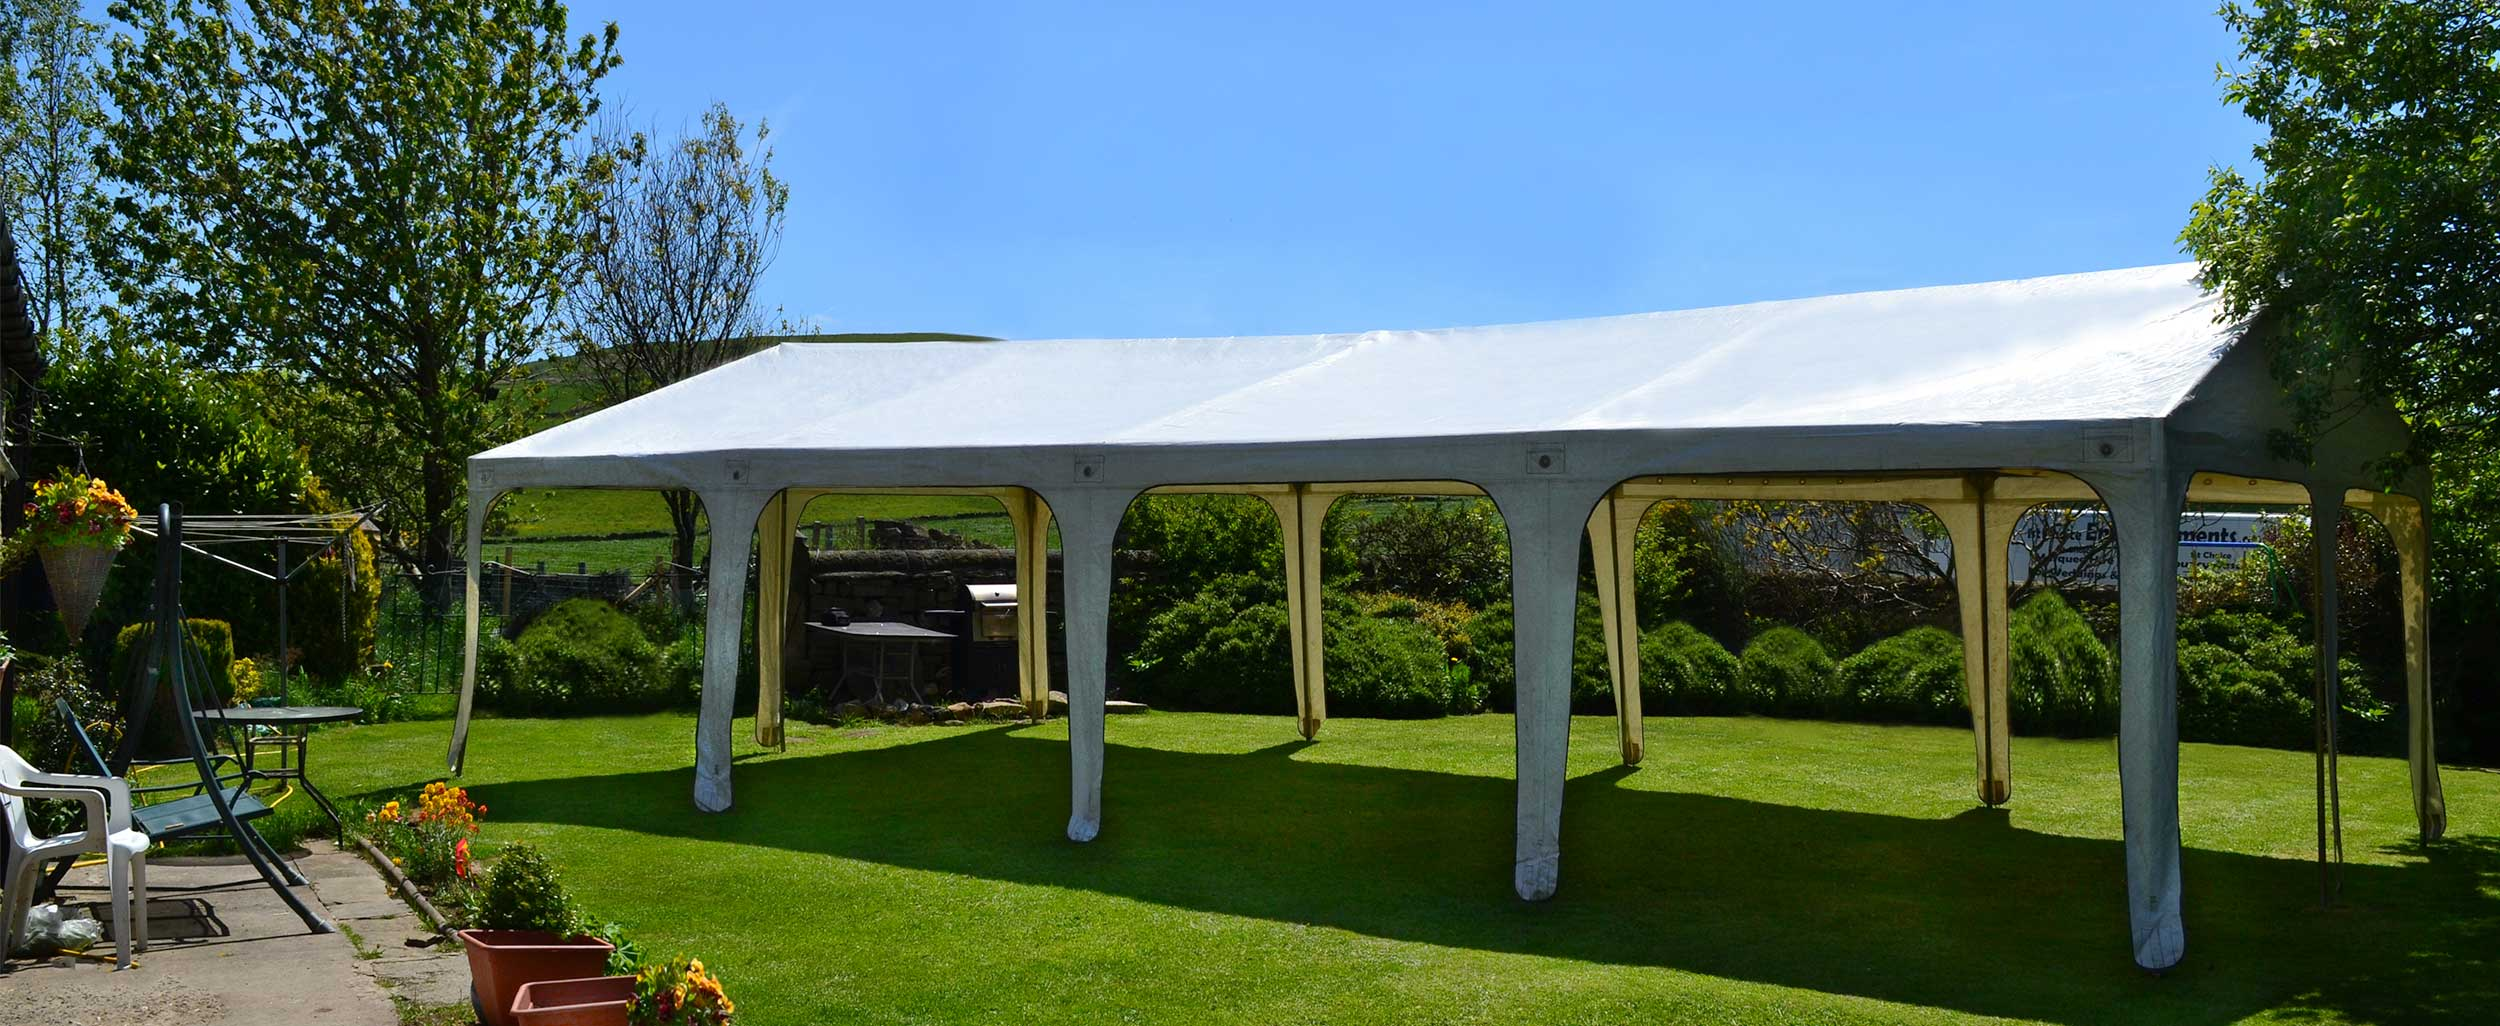 Garden Tents u0026 Gazebos : garden tents and gazebos - memphite.com